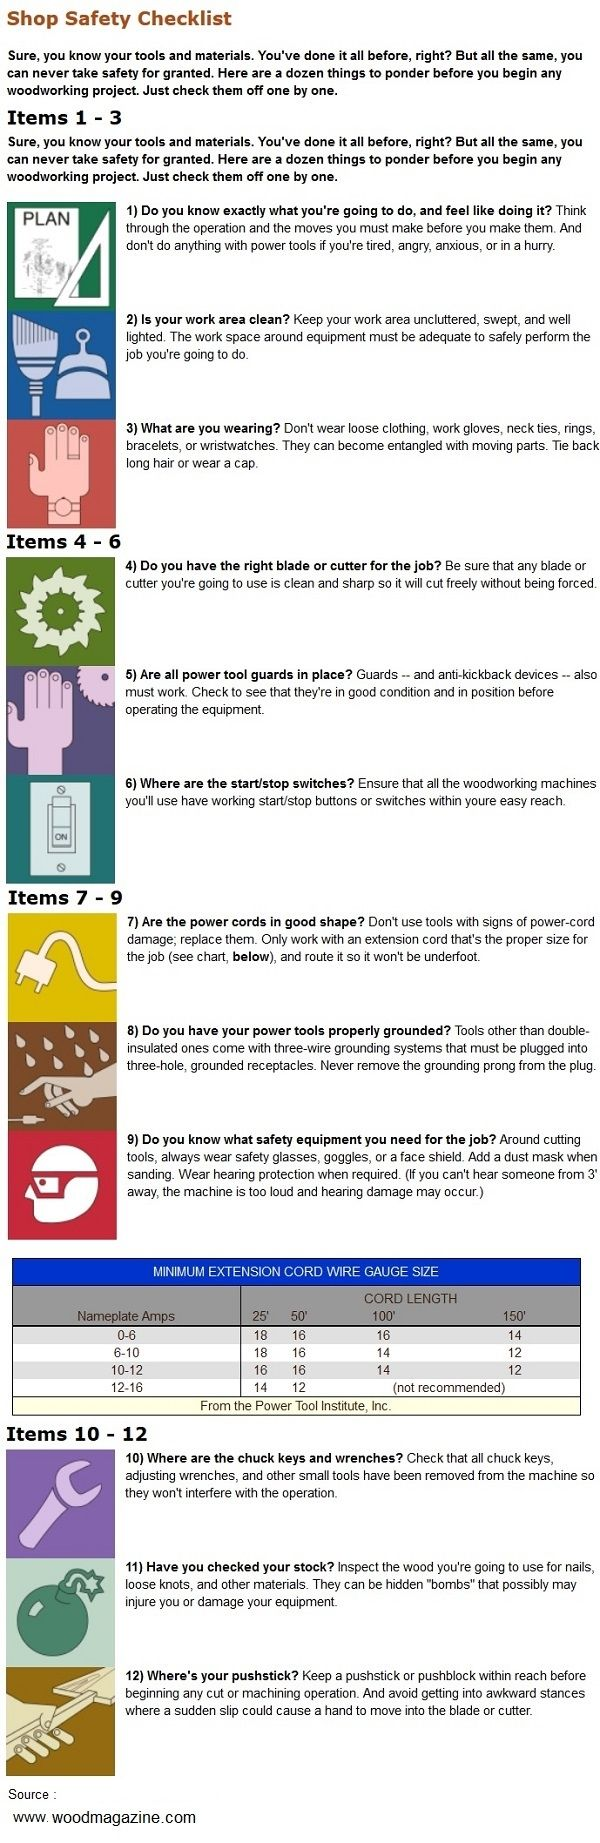 37 best images about Wood: Safety on Pinterest | Power tools, Block plan and Safety glass